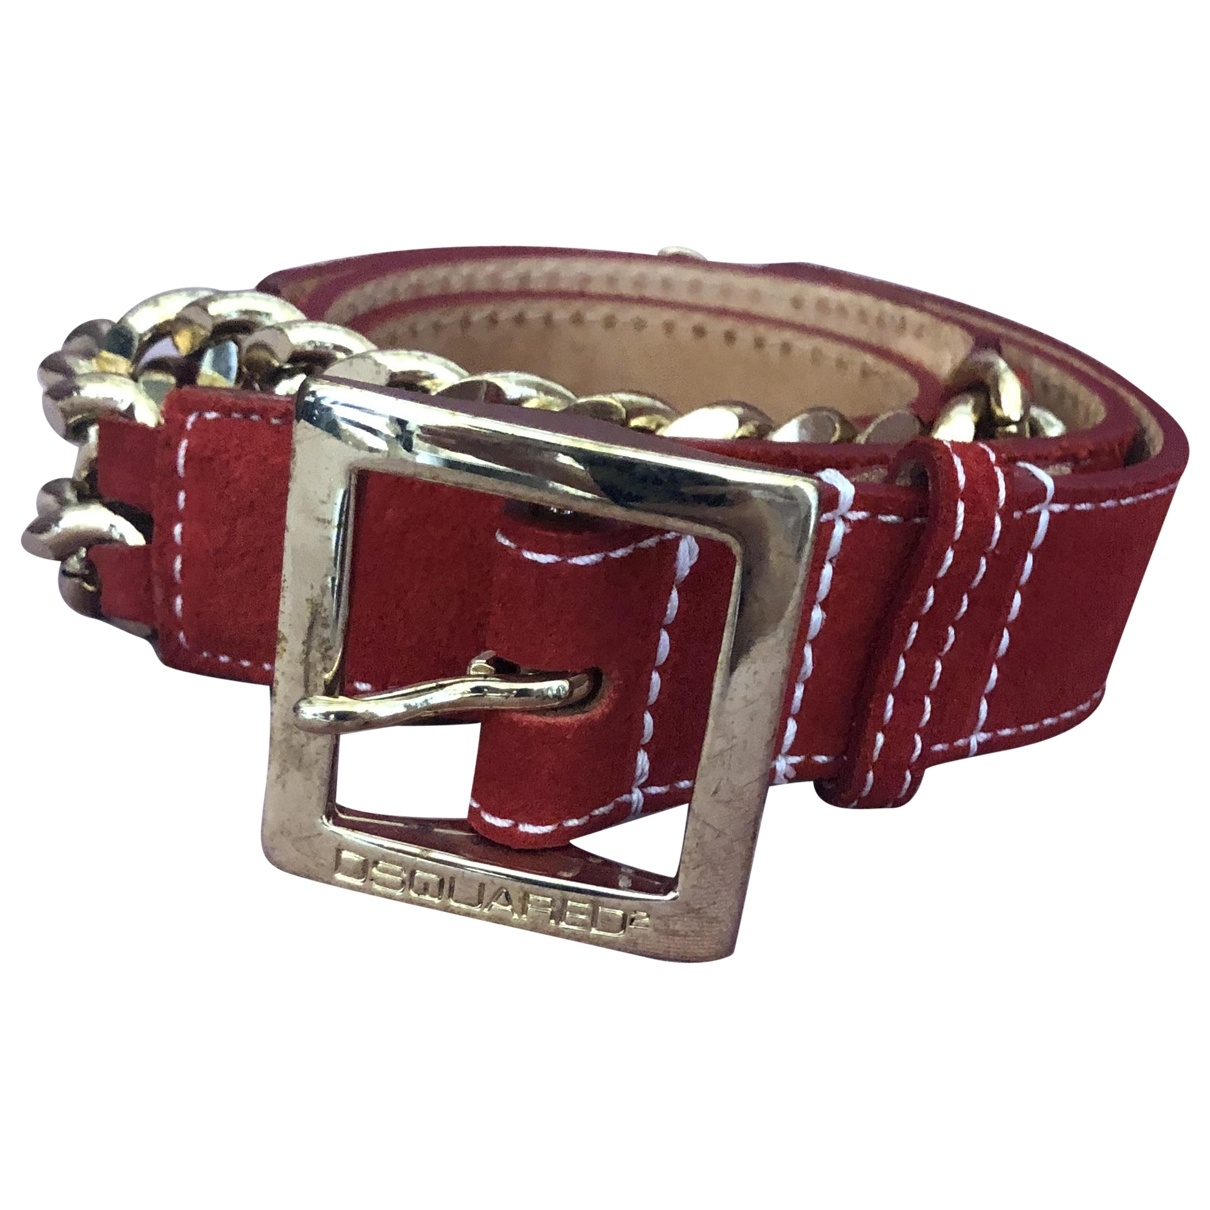 Dsquared2 \N Red Suede belt for Women S